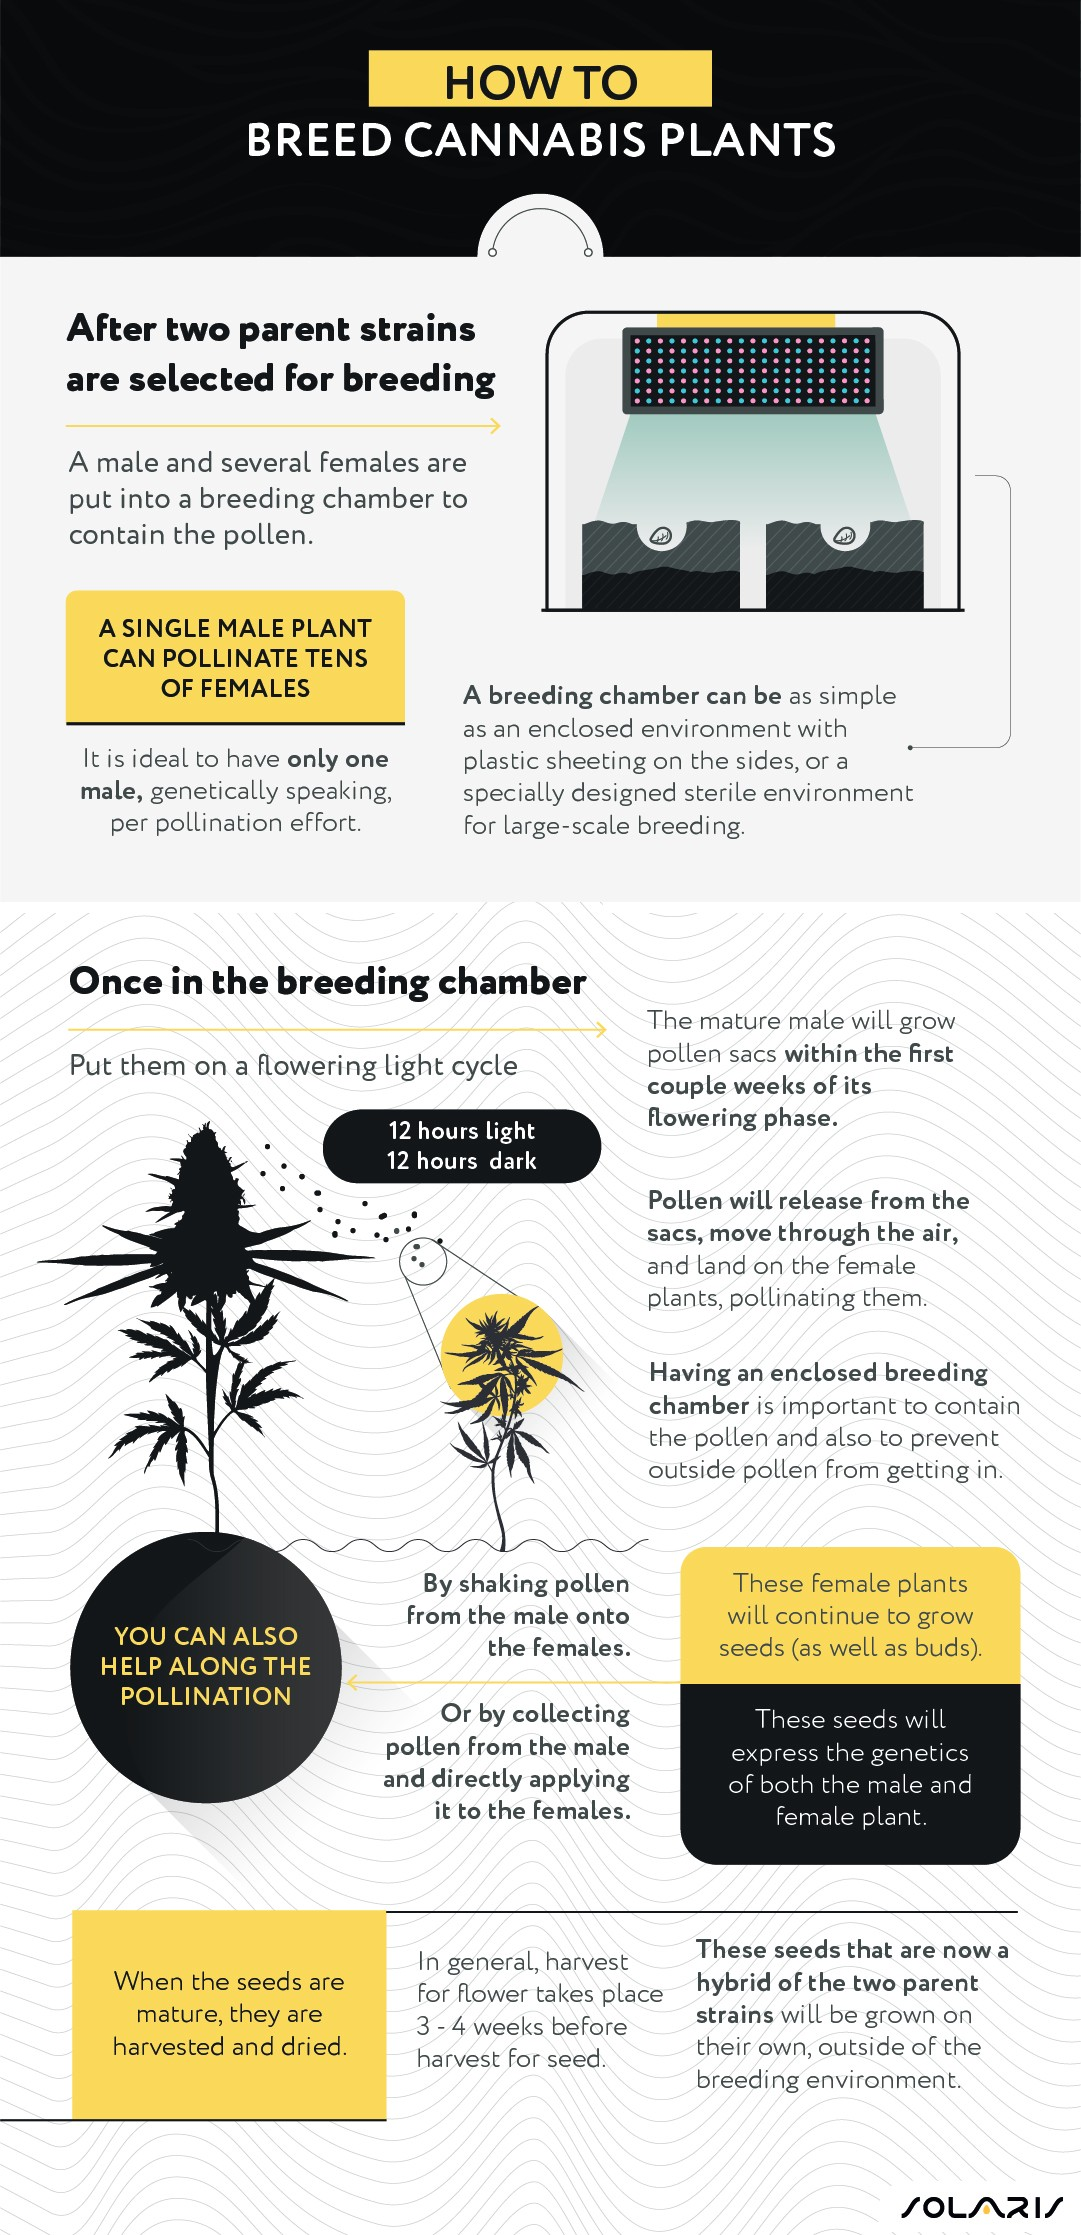 How to breed cannabis plants